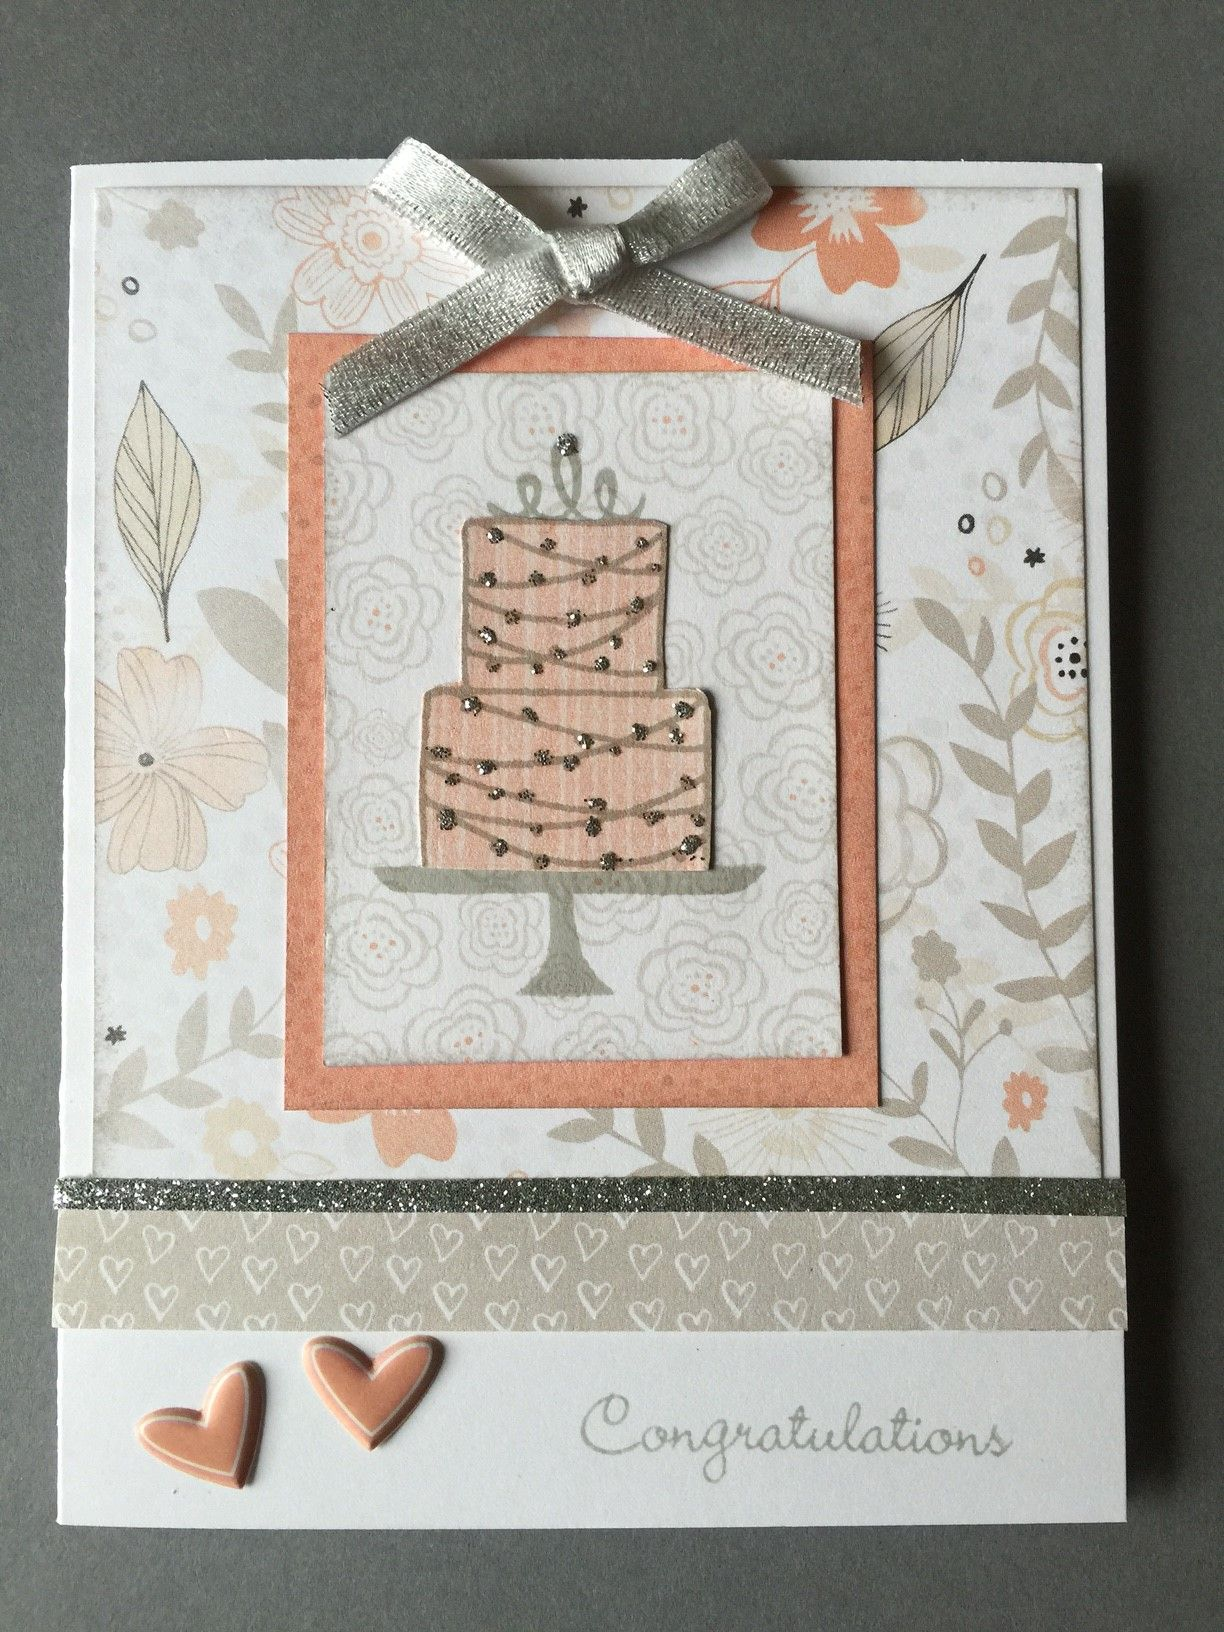 Close To My Heart Card Making Ideas Part - 42: And Yet Another Card Using Close To My Heartu0027s Charlotte Paper. I Just  Couldnu0027t Stop Working With This Wonderful Paper. Our Friendu0027s Daughter Is  Getting ...